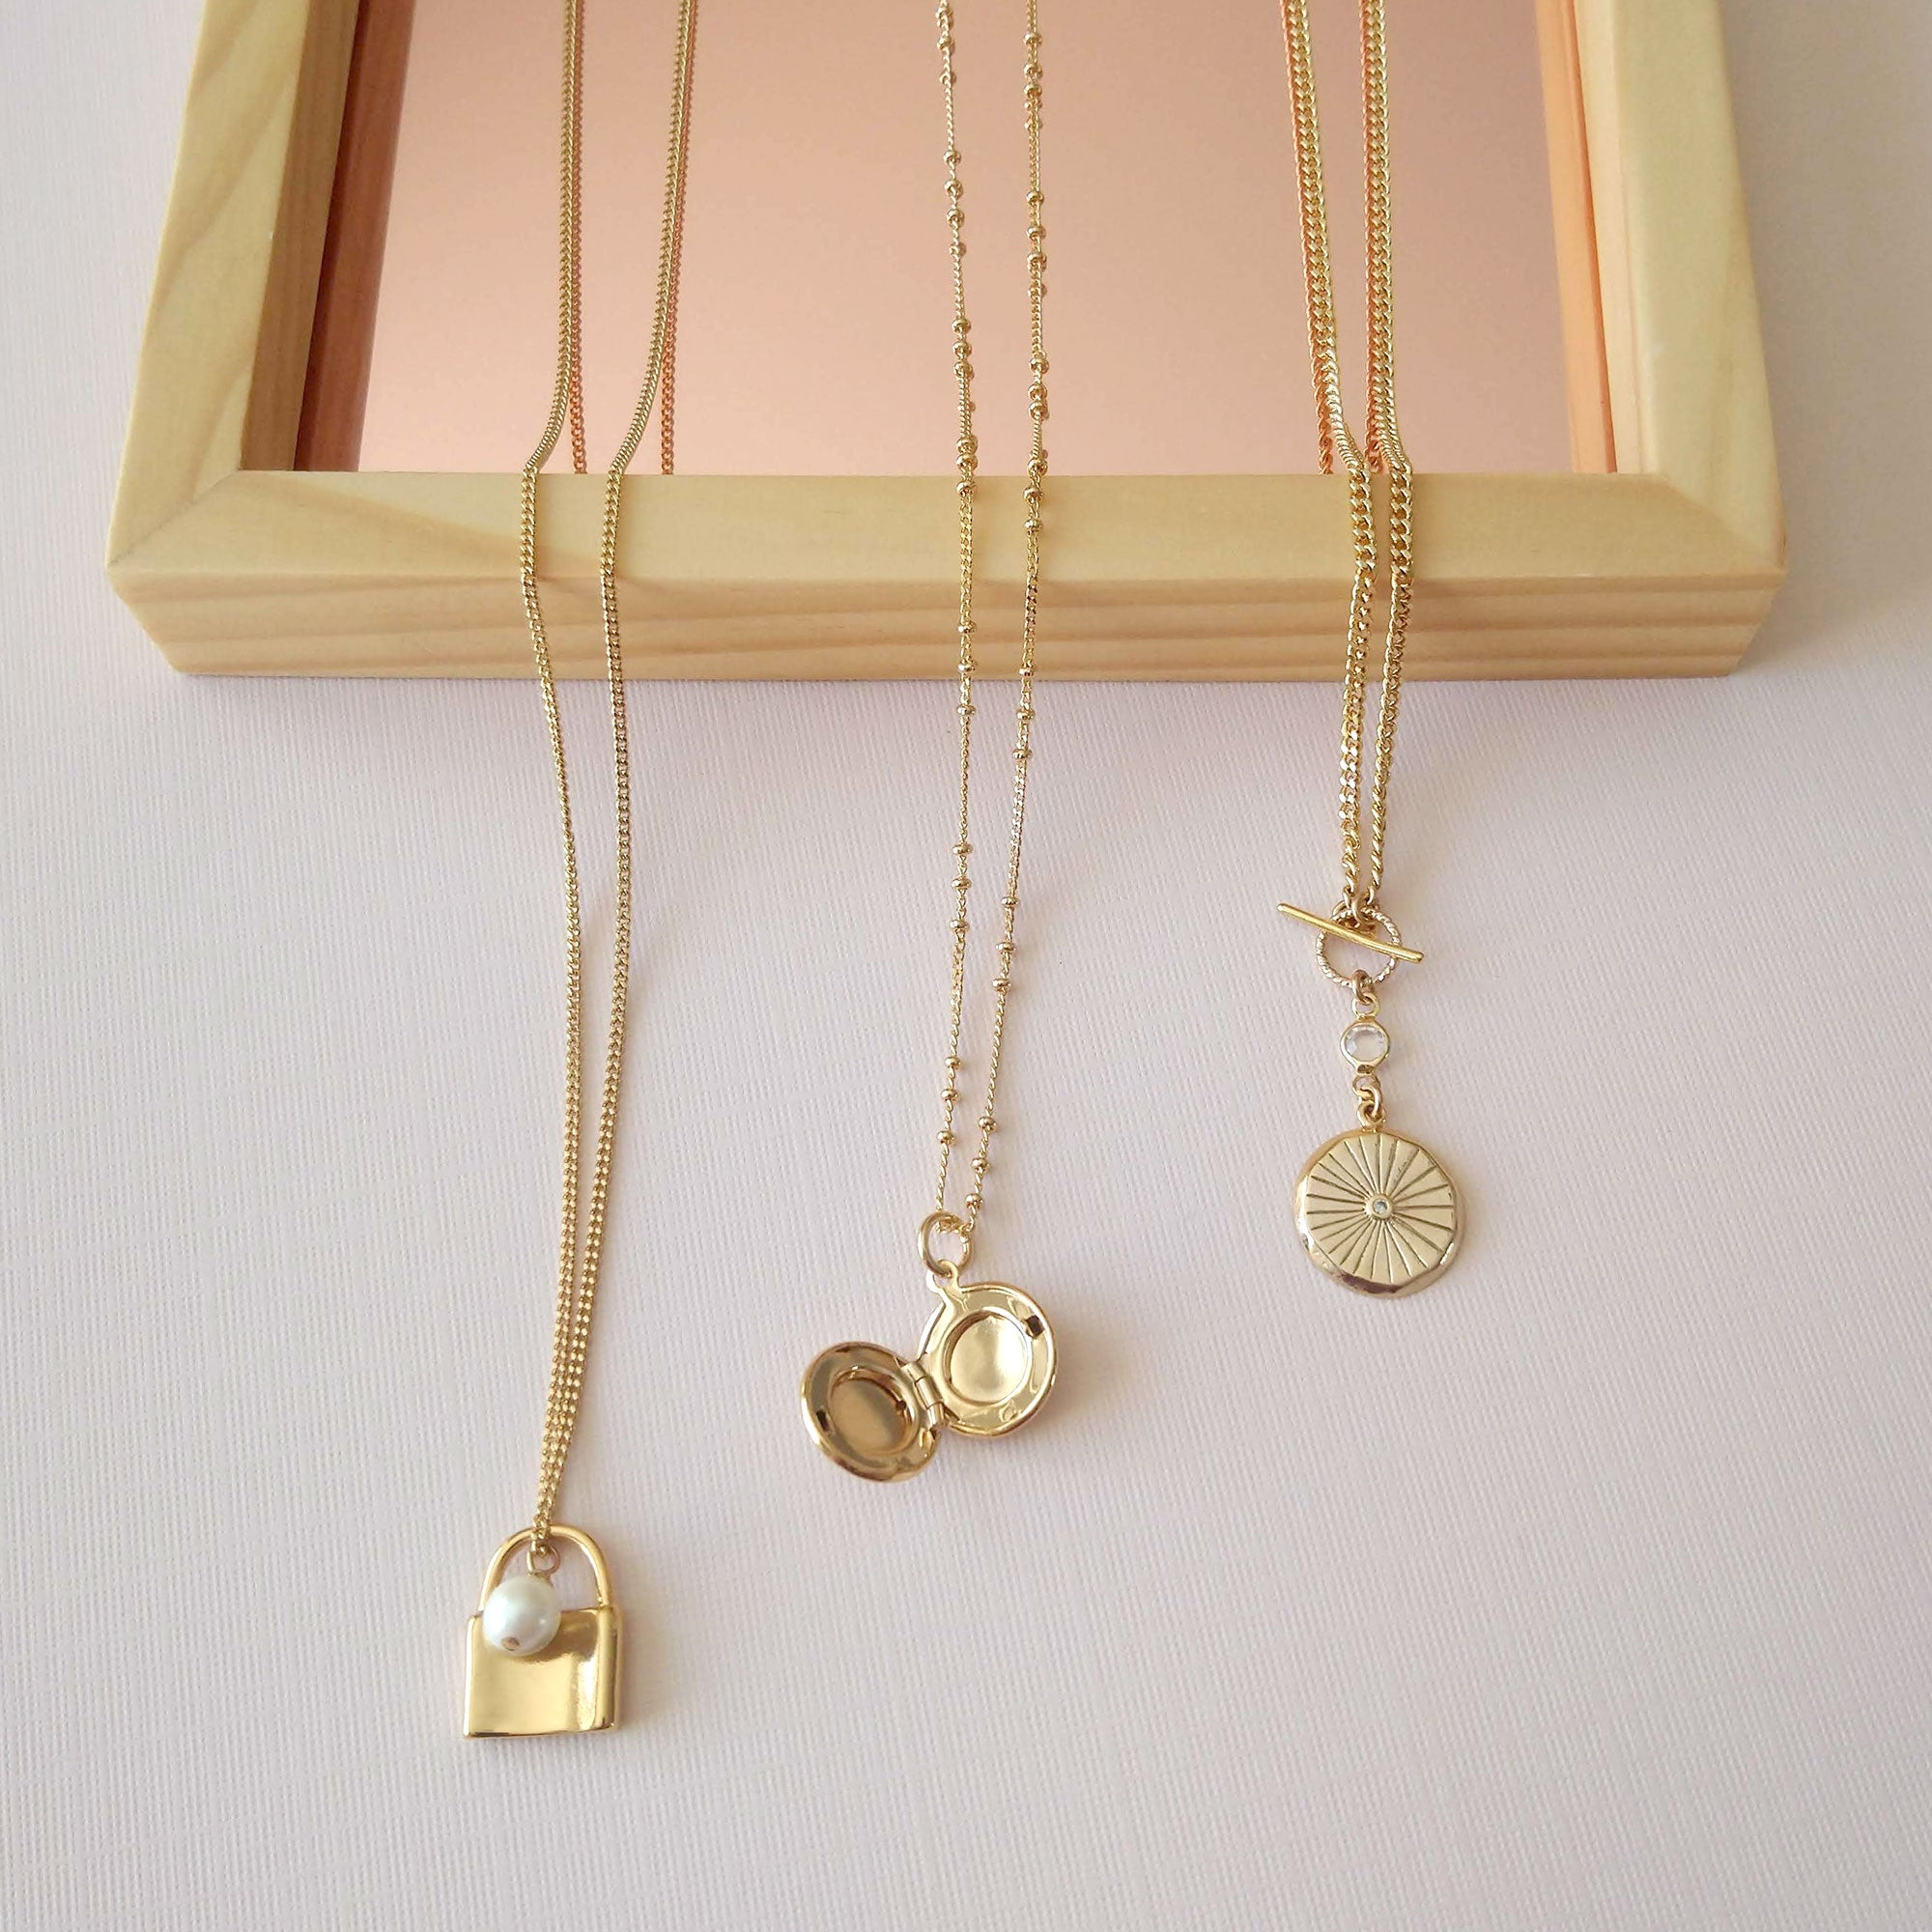 gold charm necklaces assortment locket